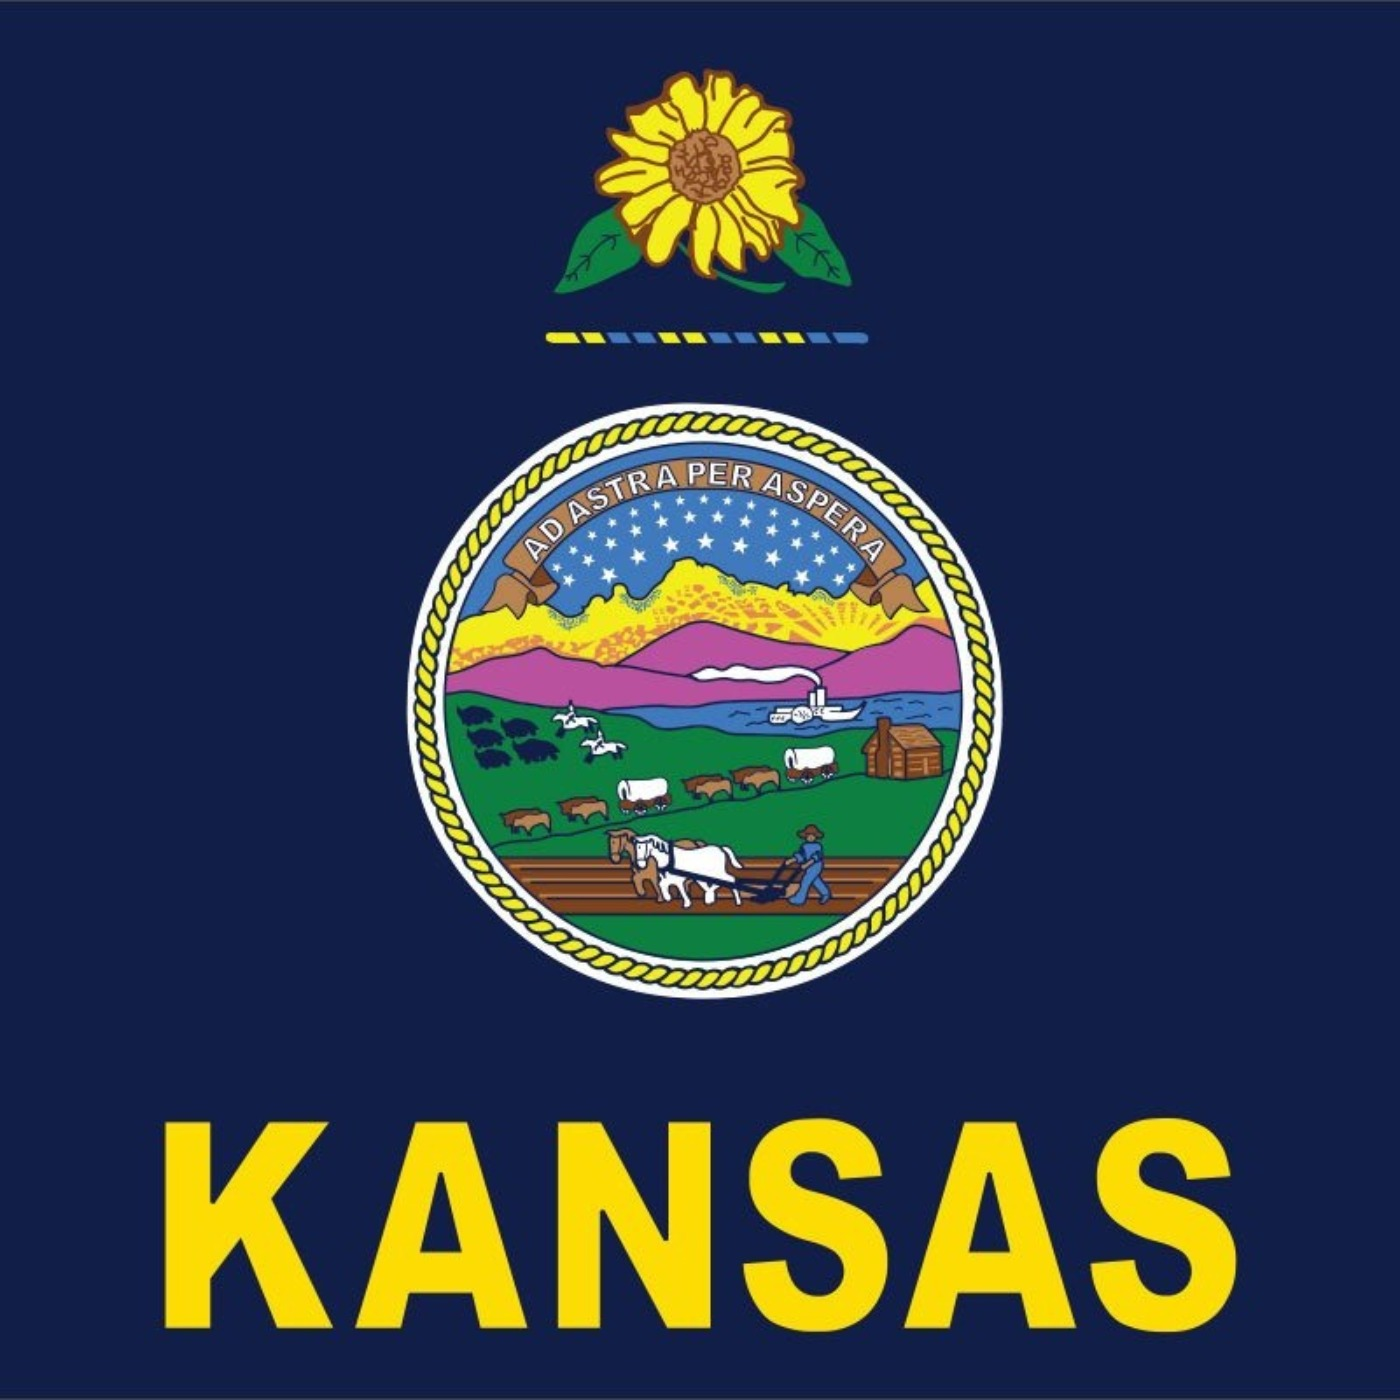 609 - Os Estados Unidos da América apresentam: Fun Facts of Kansas!